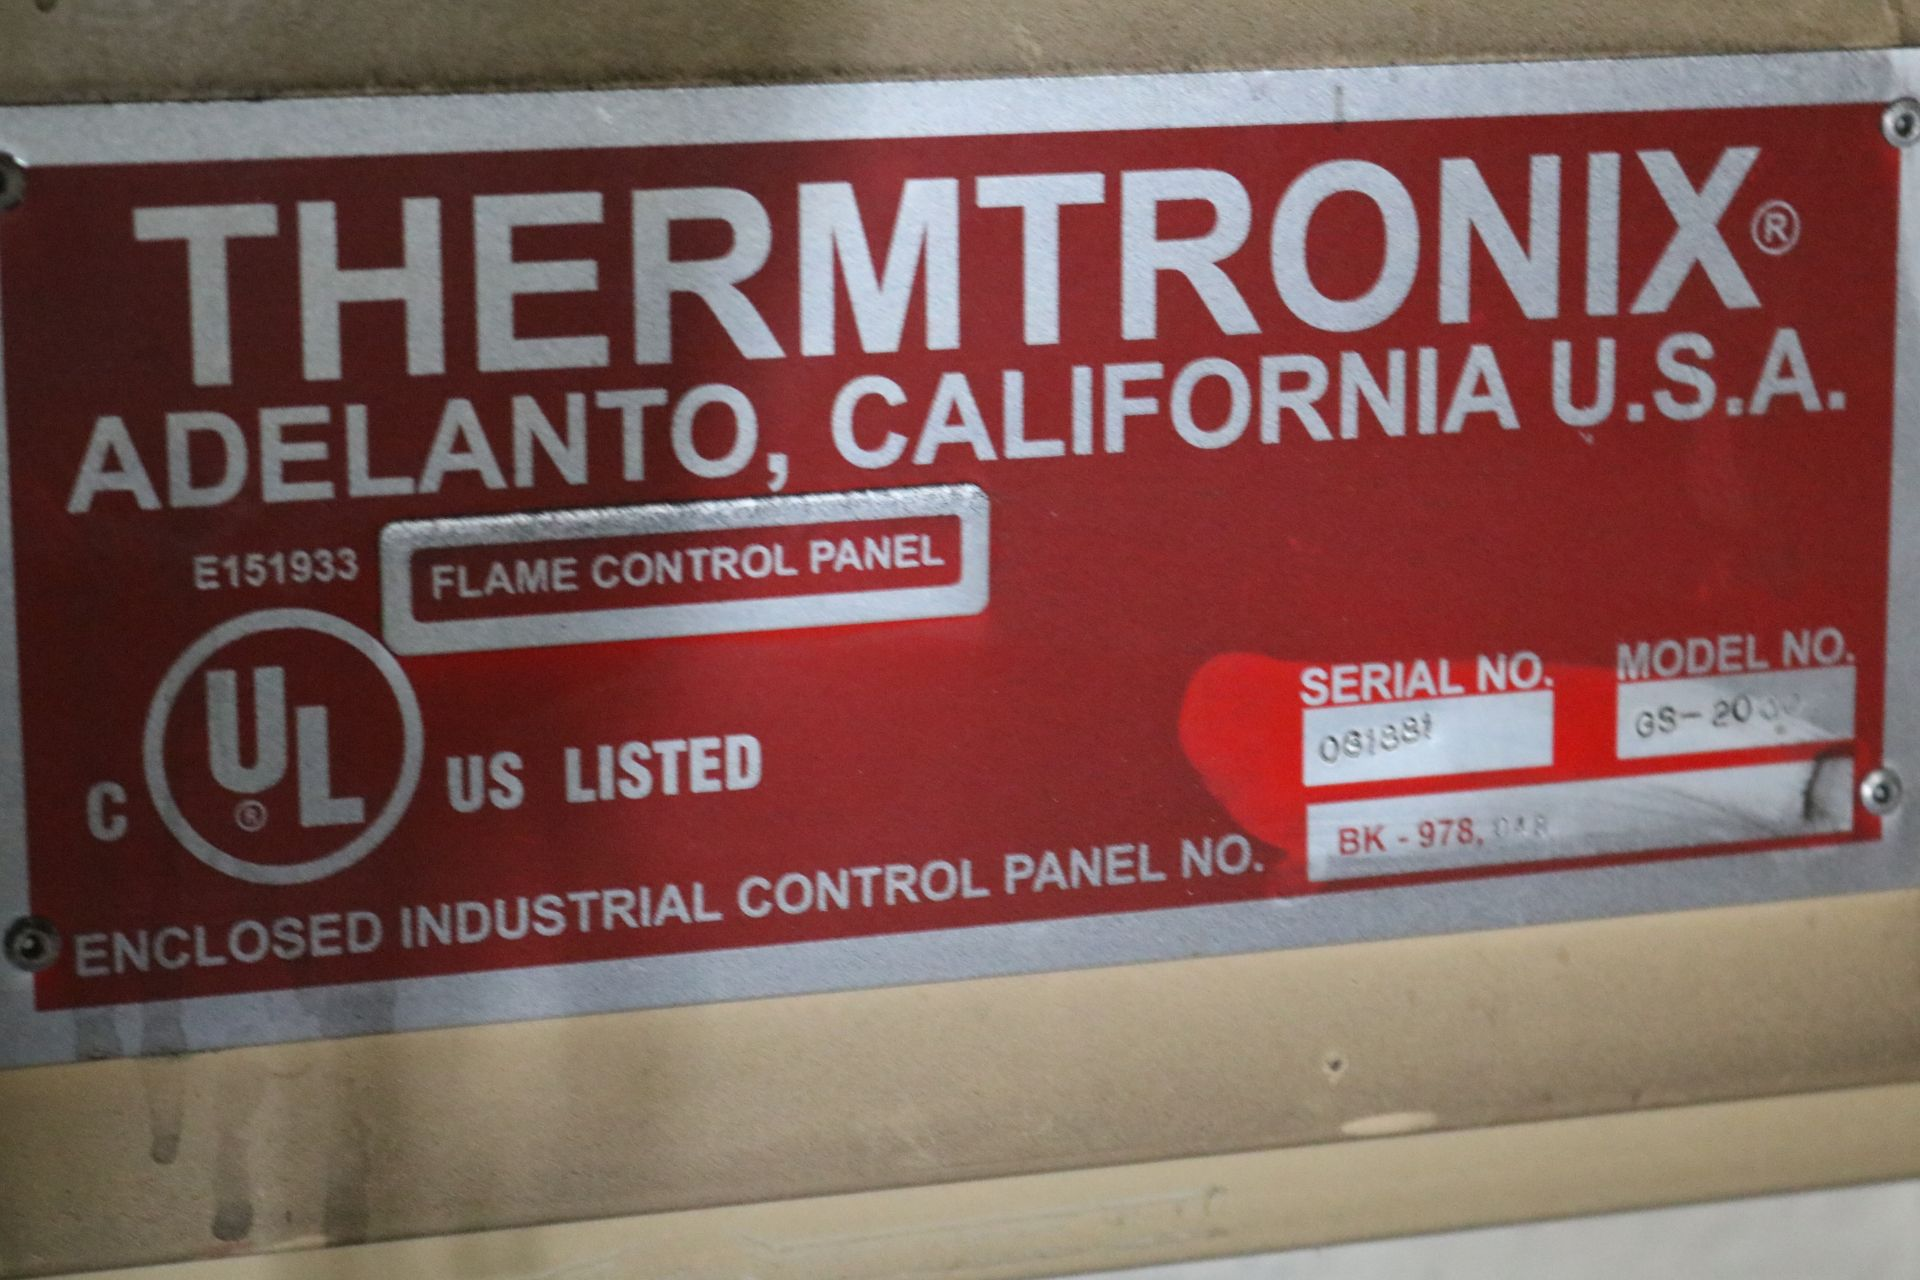 Lot 45 - 2001 THERMTRONIX MODEL GS900 900 LB GAS FIRED MELTING FURNACE, GAS SYSTEM AND CONTROLS, S/N 061881